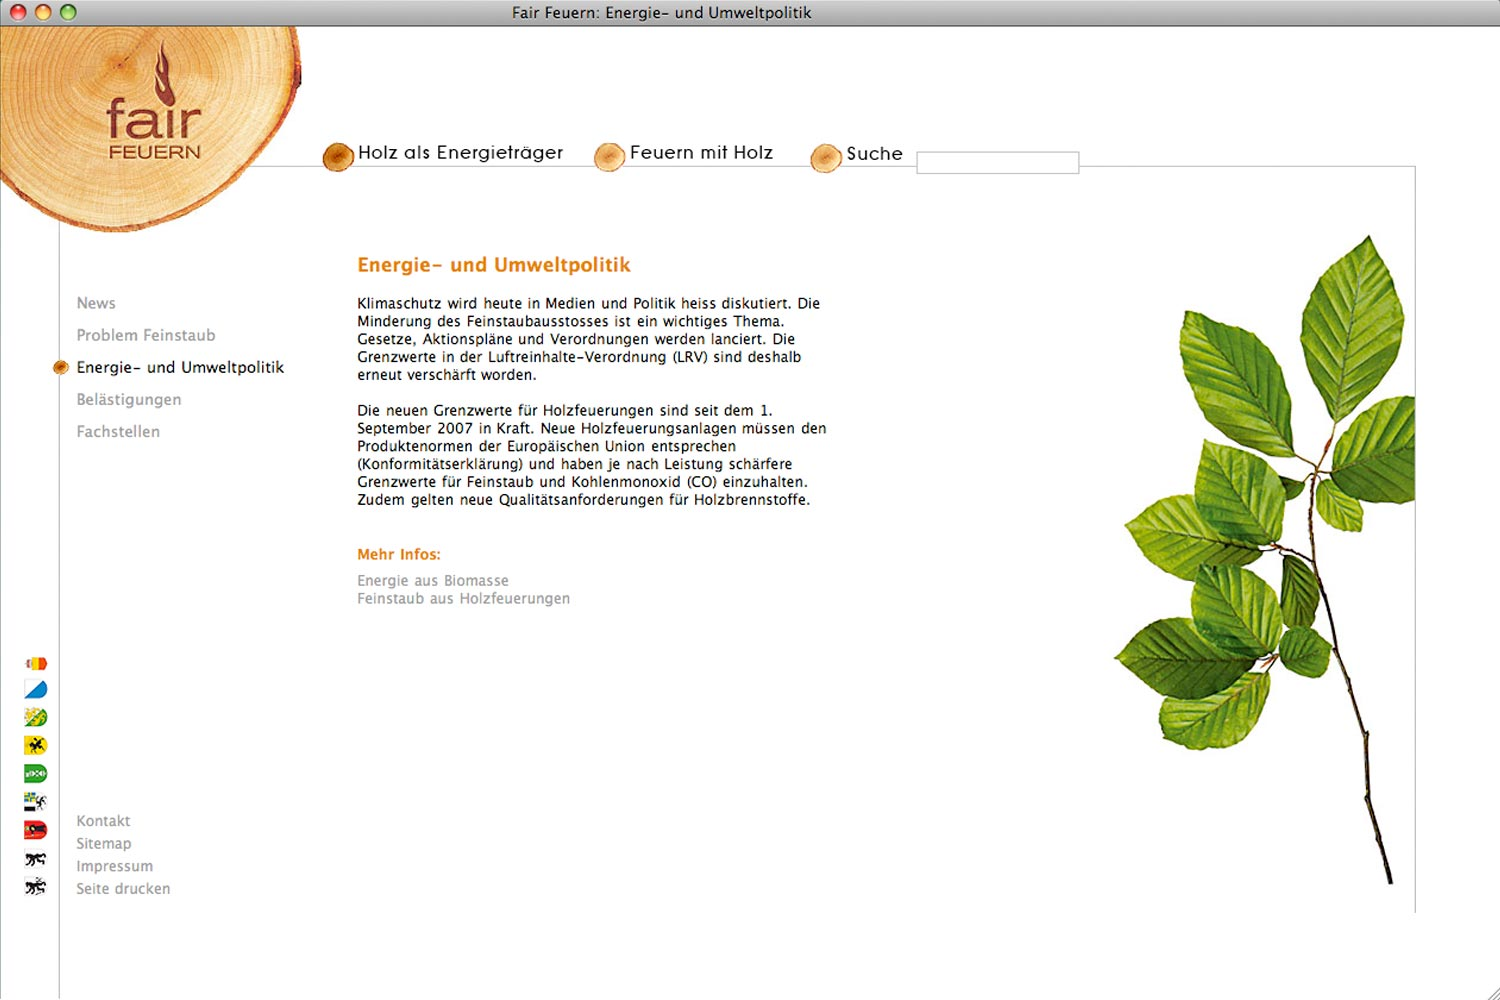 portfolio-web-website-fairfeuern-2.jpg